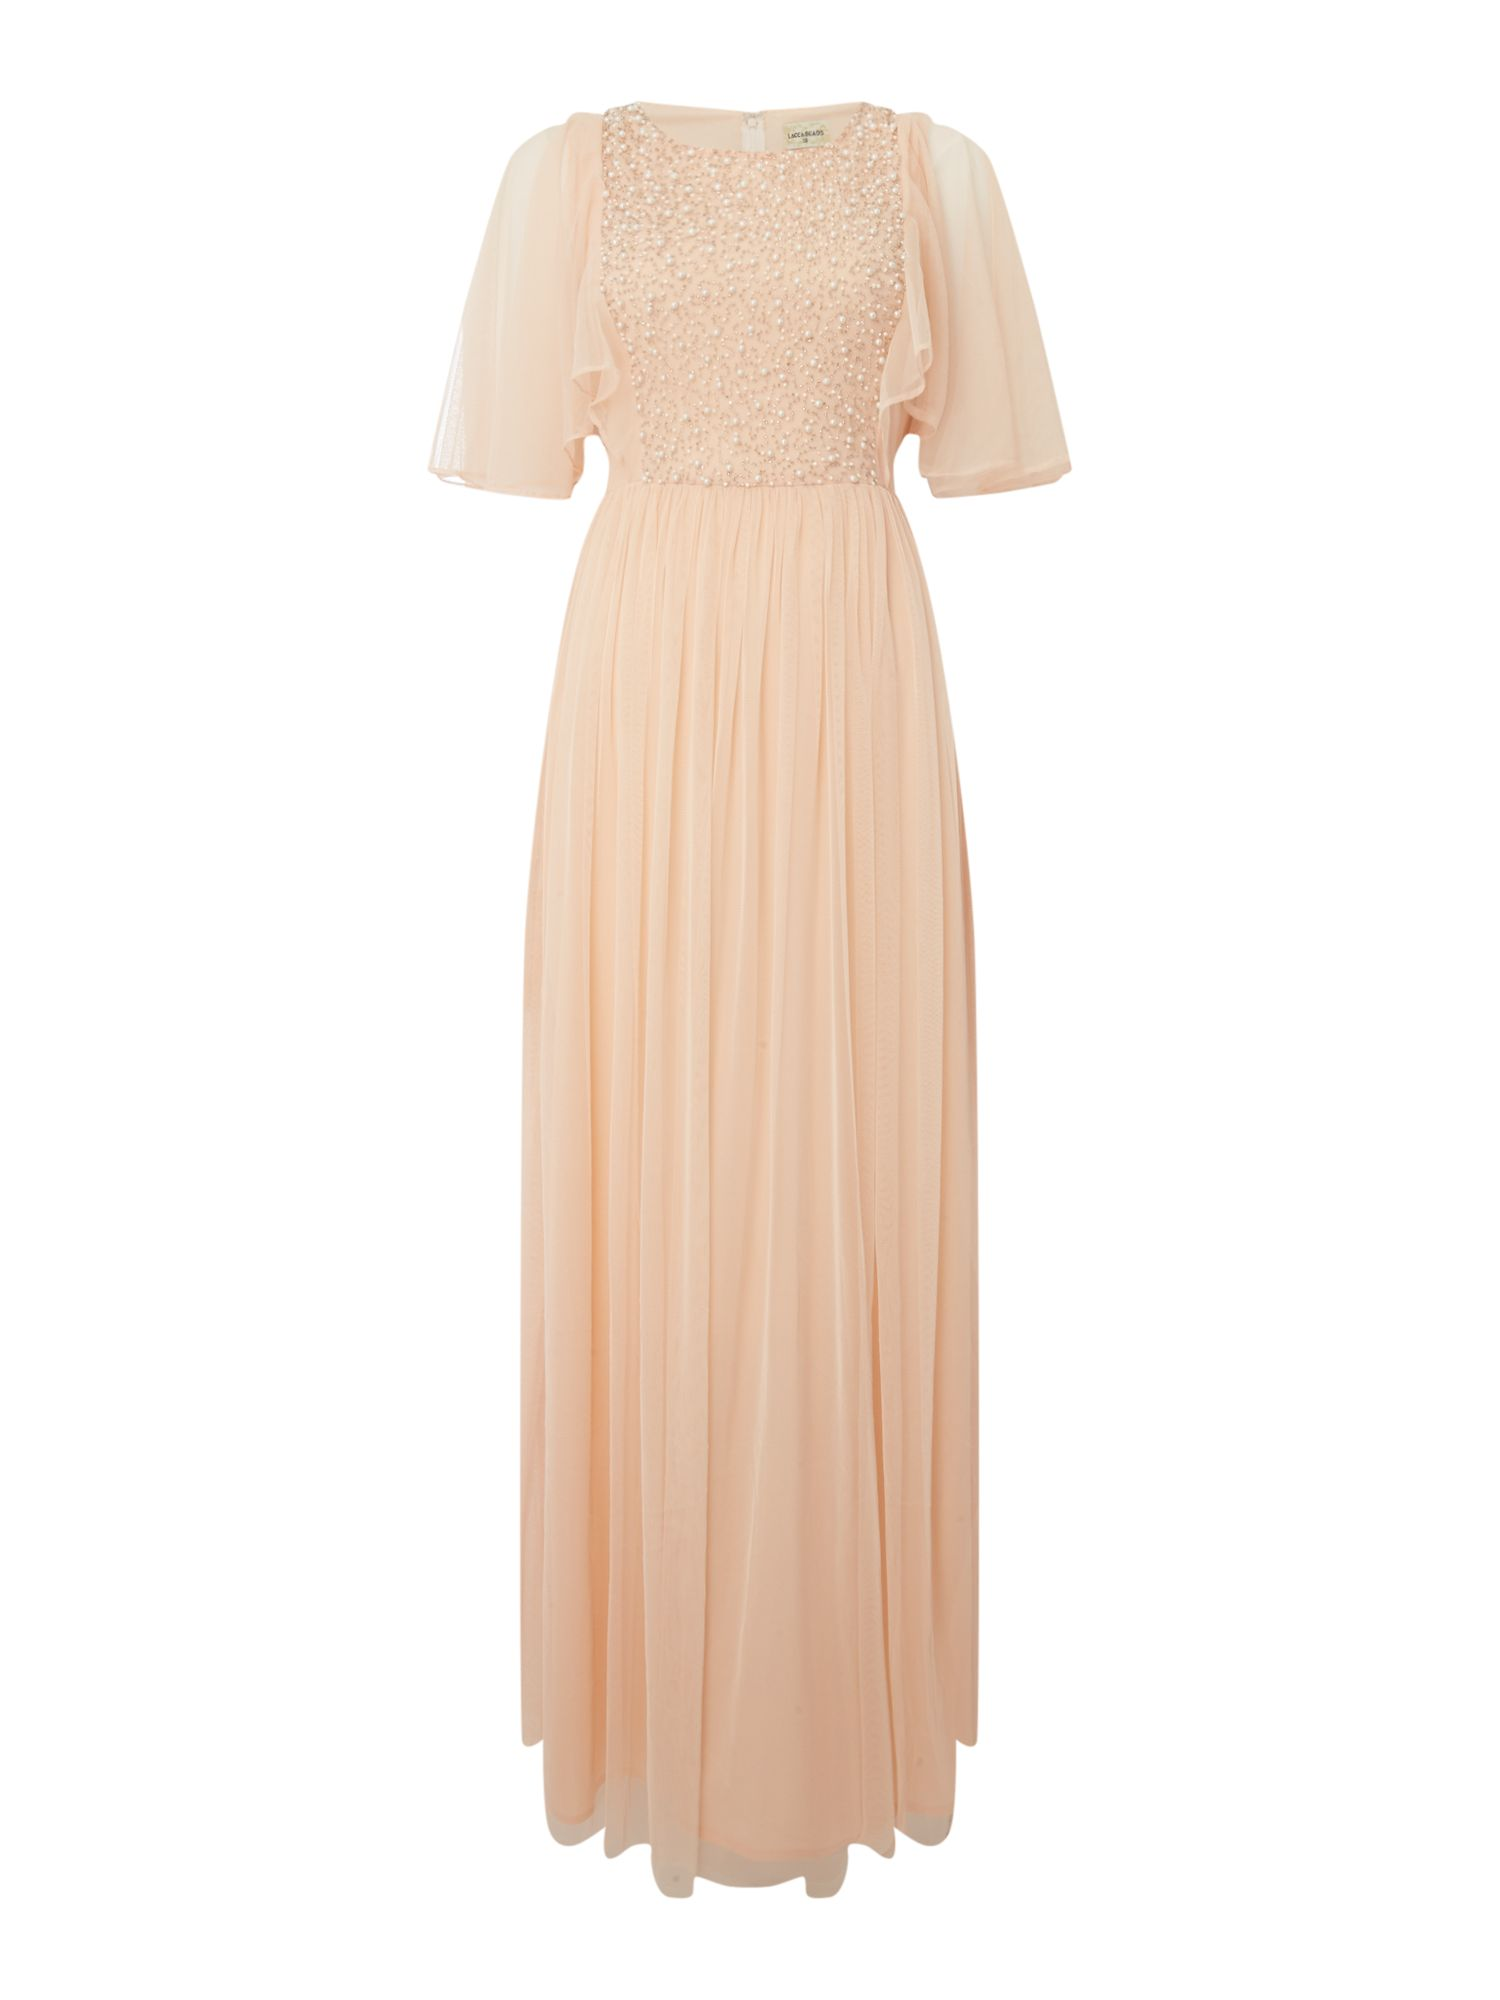 Lace and Beads Maxi dress with flare sleeve, Nude